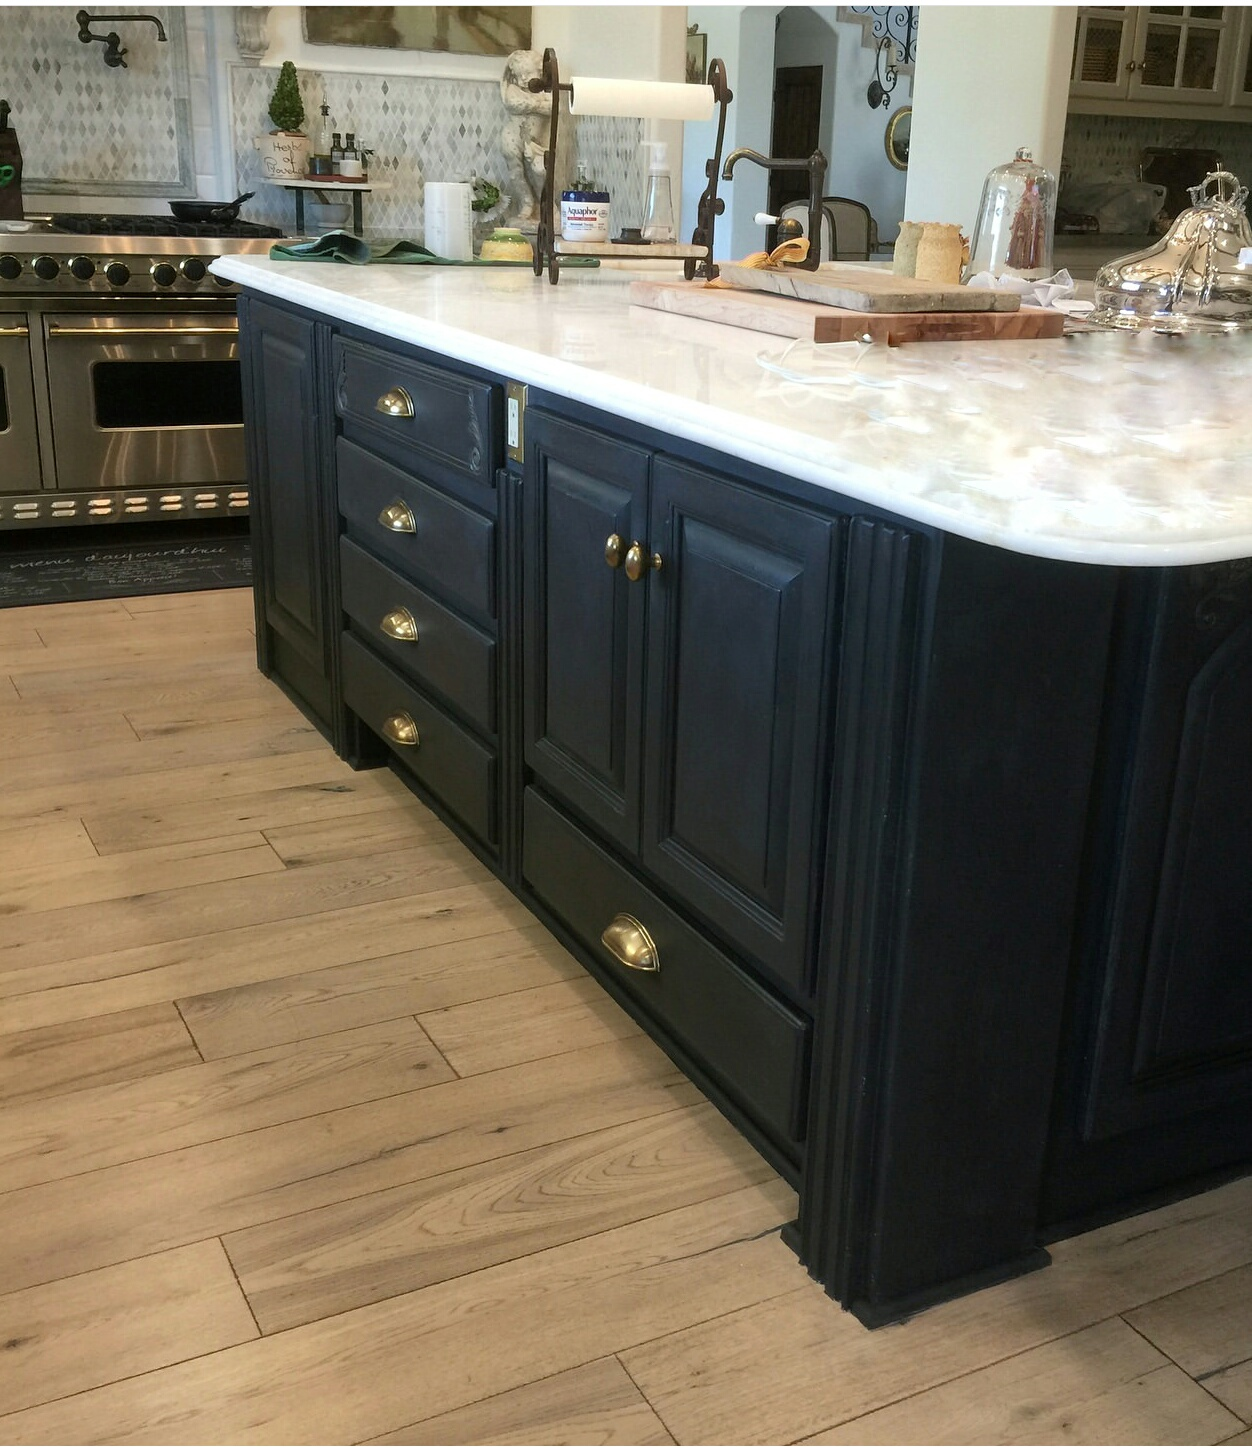 Easily transform kitchen cabinets and get an updated look with Jolie Paint. Learn the tips and essential techniques in our Workshops.